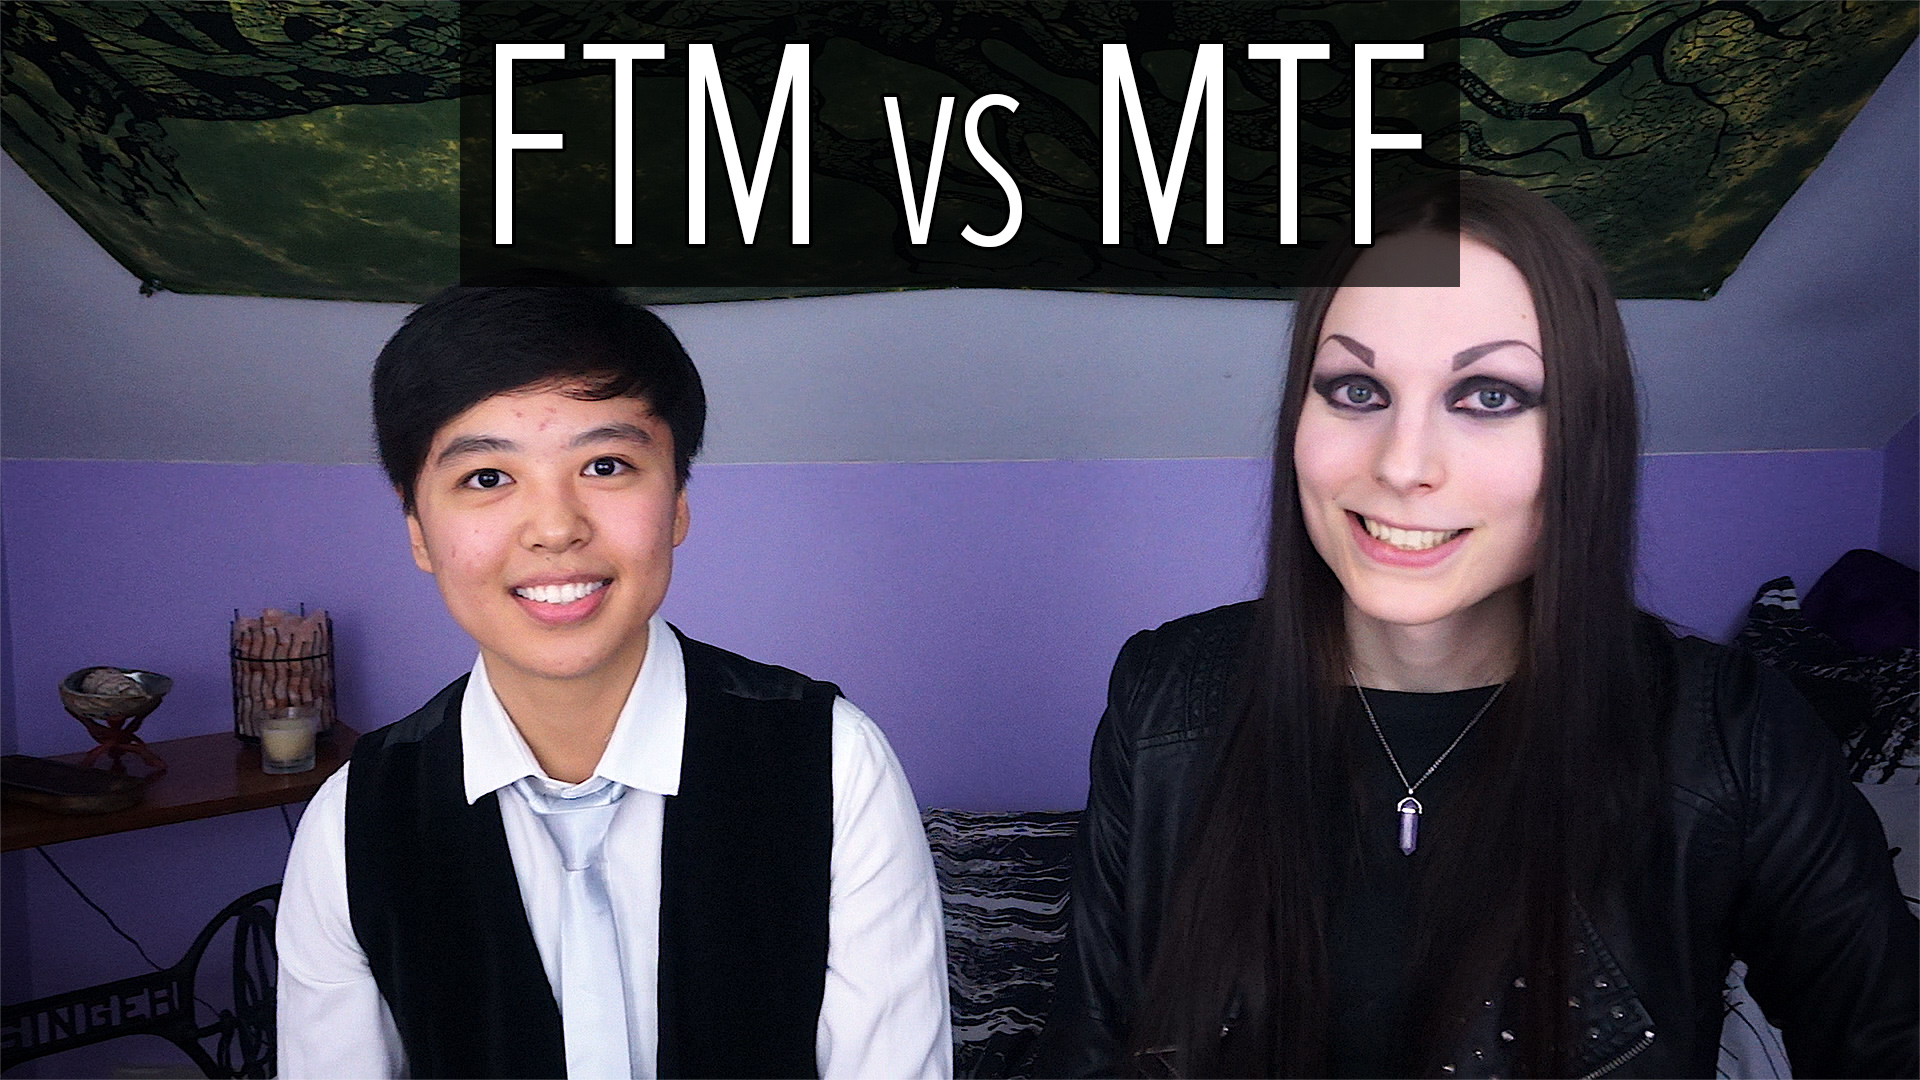 FTM vs MTF Transgender (featuring Rui)